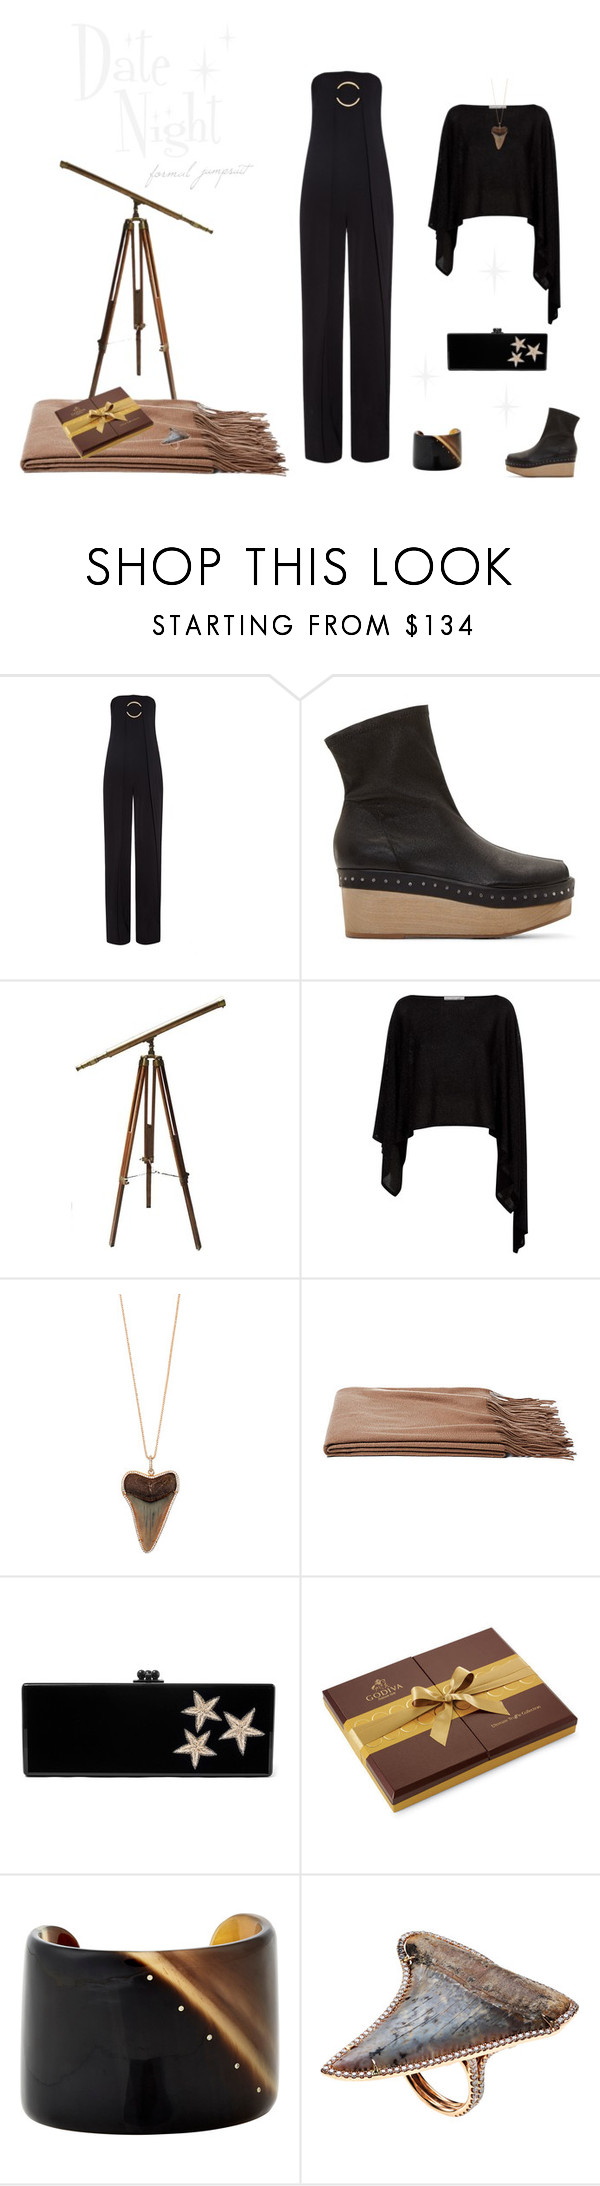 """""""Reeves"""" by southernreef ❤ liked on Polyvore featuring STELLA McCARTNEY, Rick Owens, Damsel in a Dress, Anita Ko, a&R, Edie Parker and Monique Péan"""